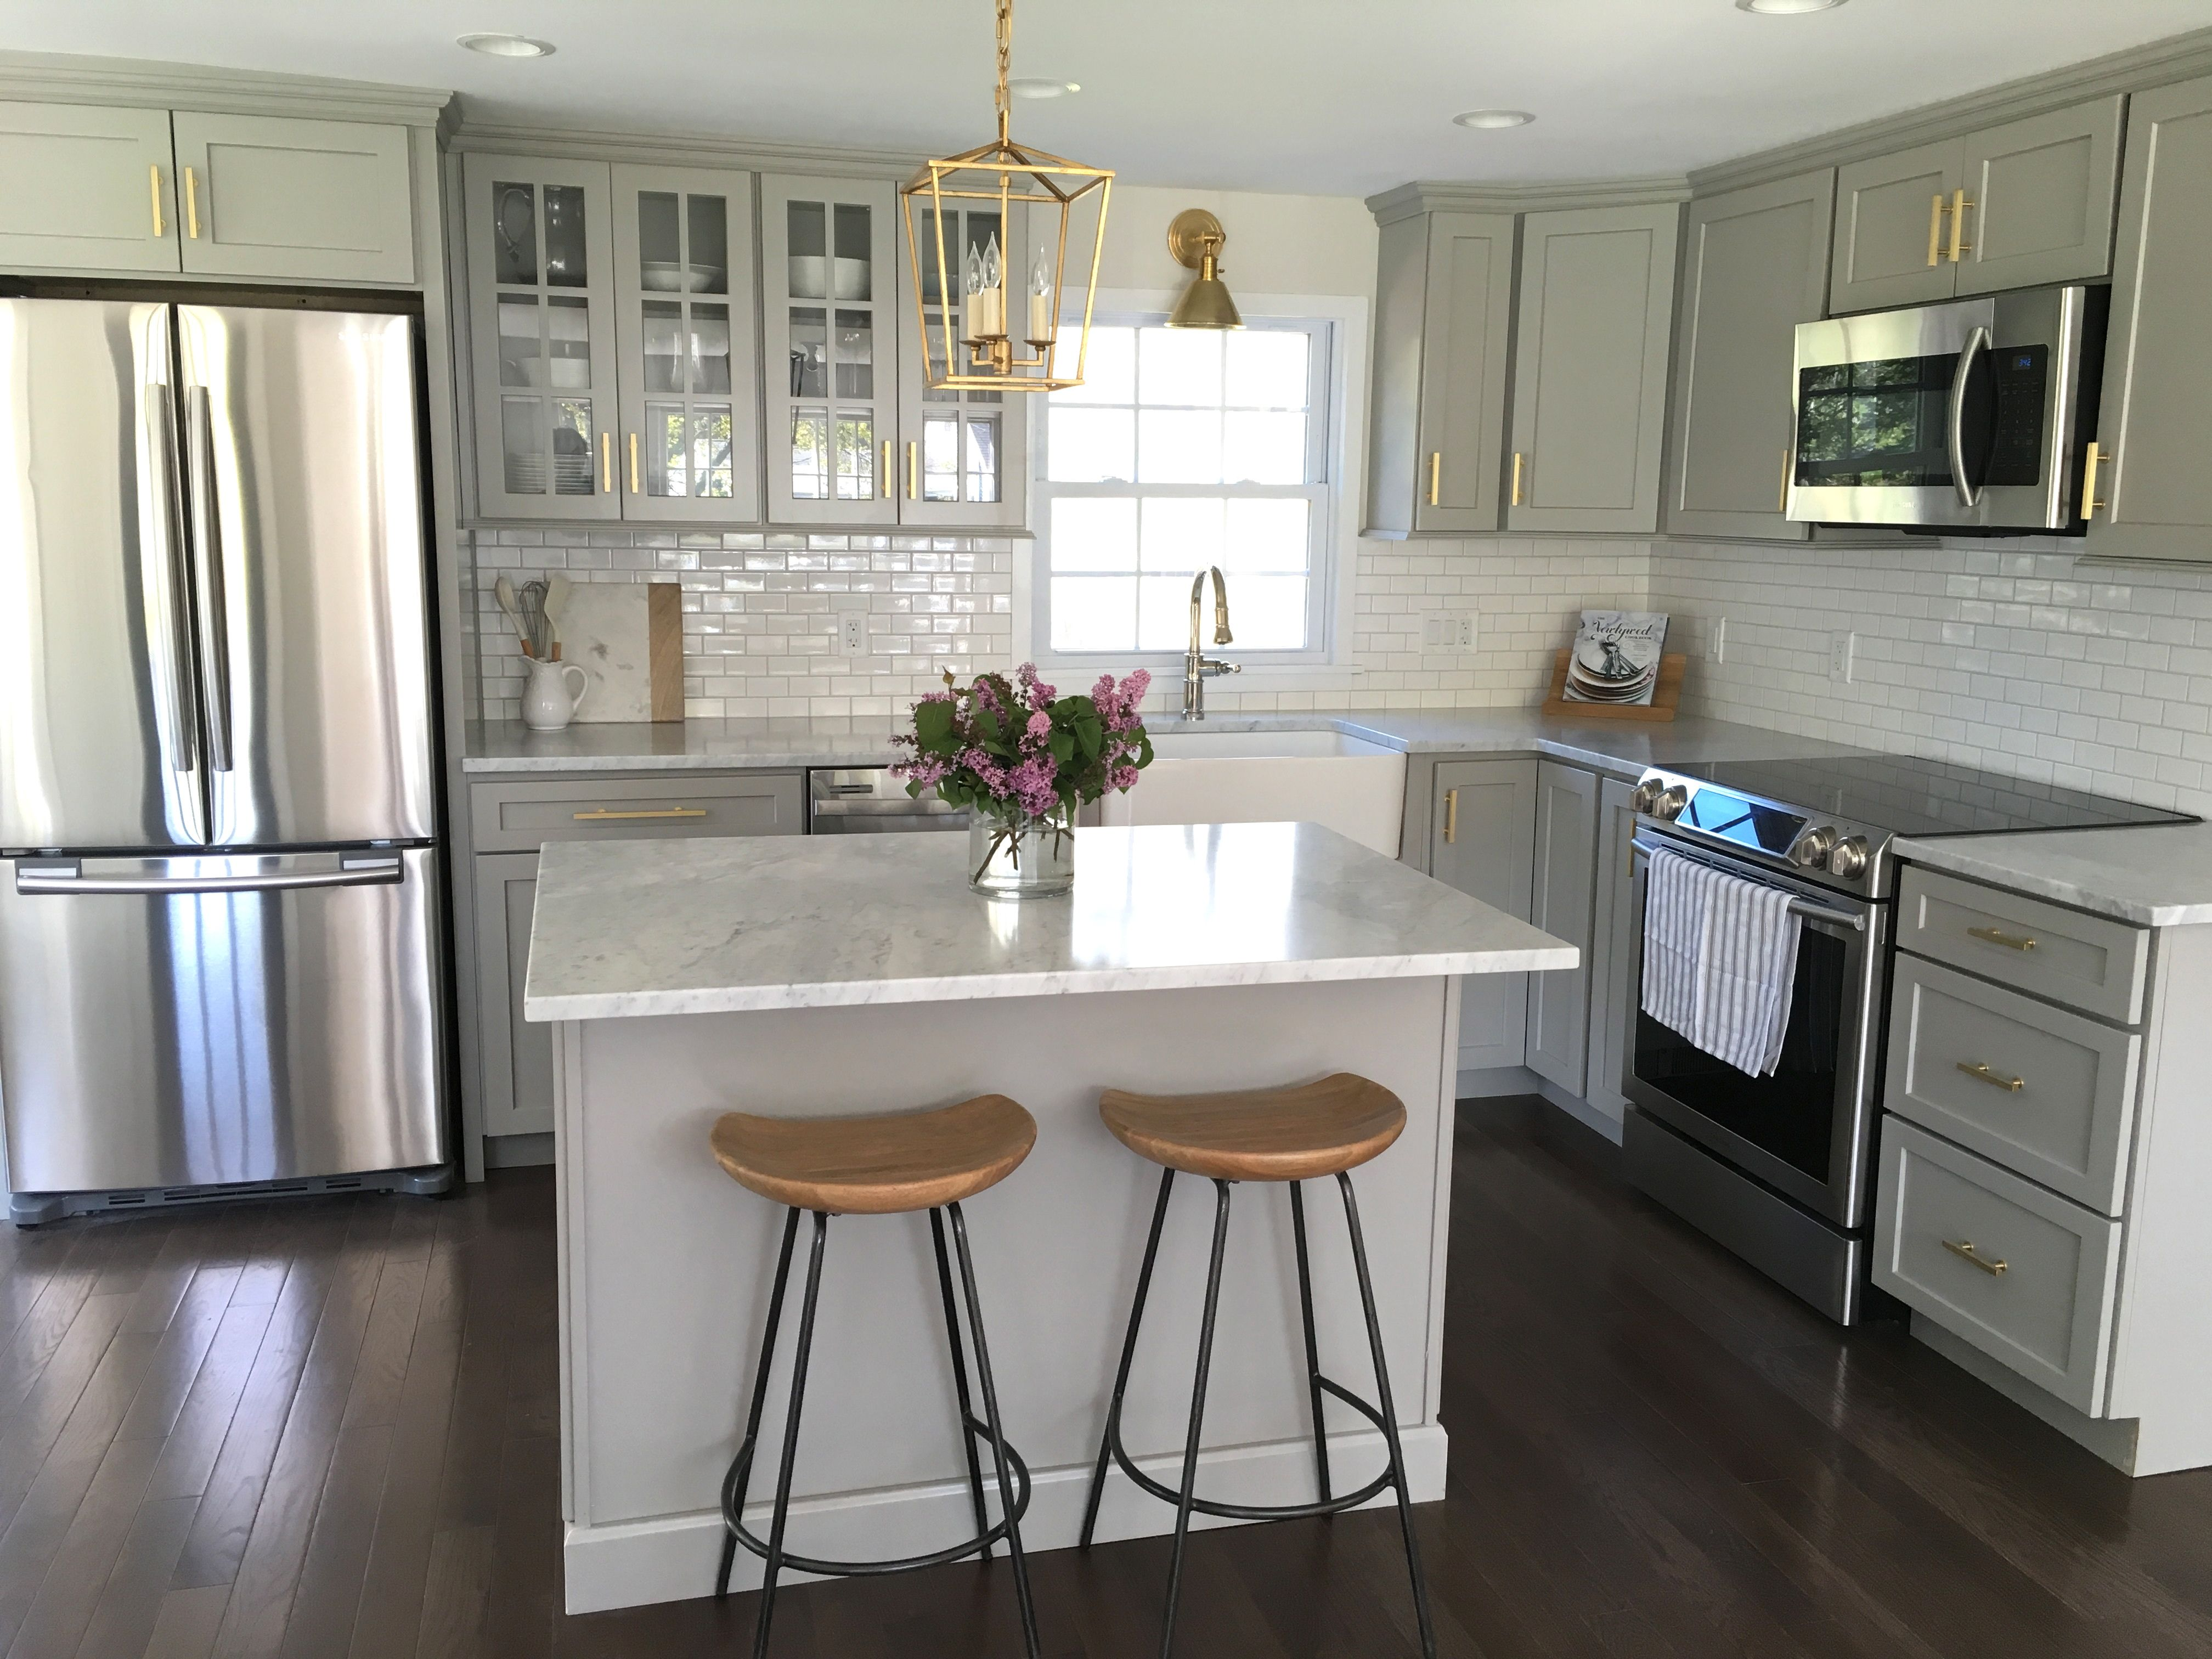 Elements of Style Blog LINDSEY'S KITCHEN THE FINAL